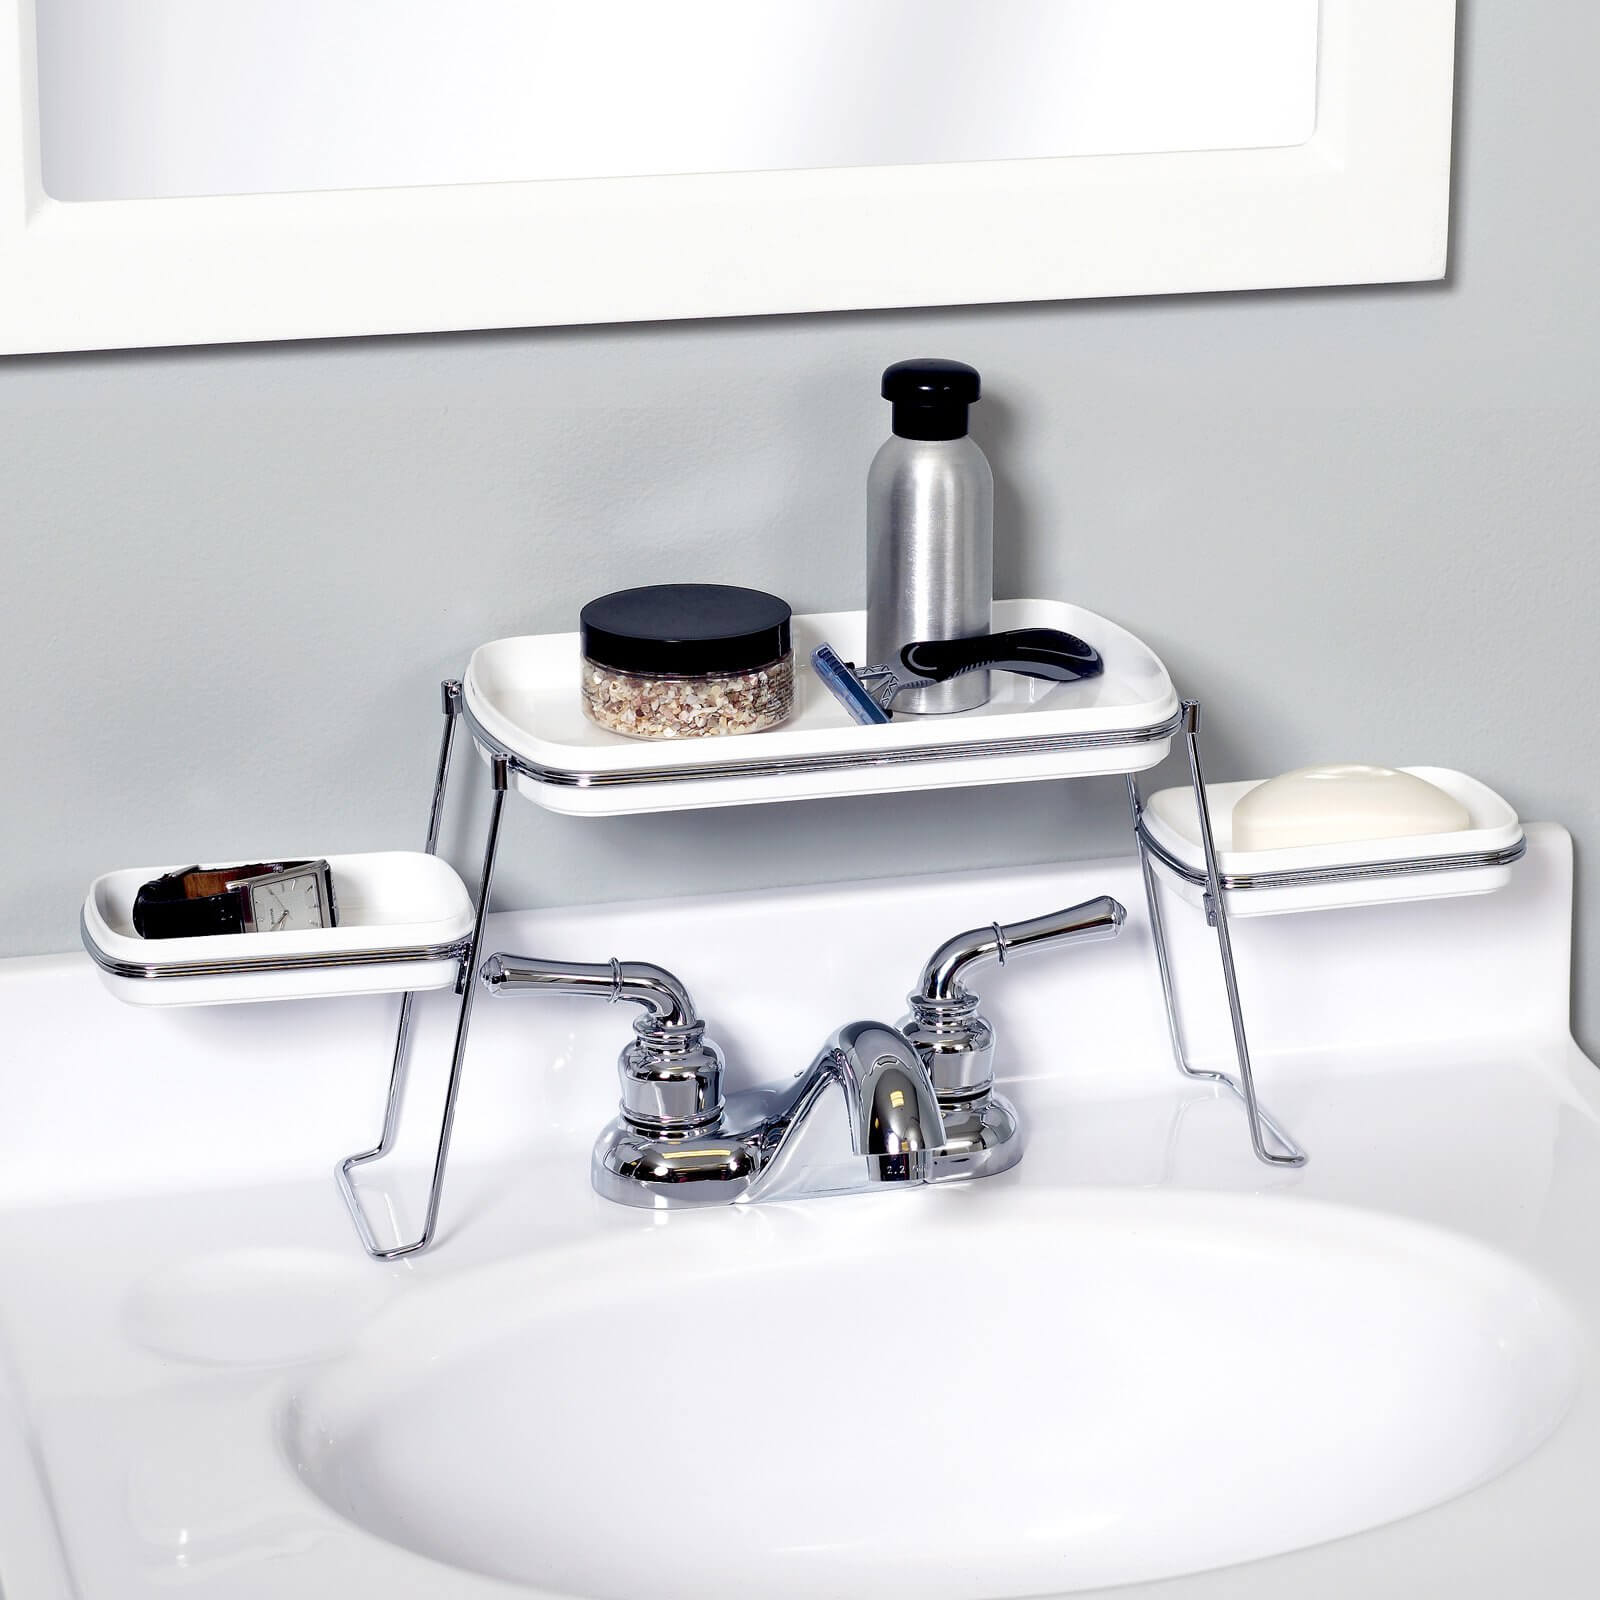 Sitting just above your faucet, this keeps your soaps and other sundries off of your clean countertops, meaning you have to scrub them less.